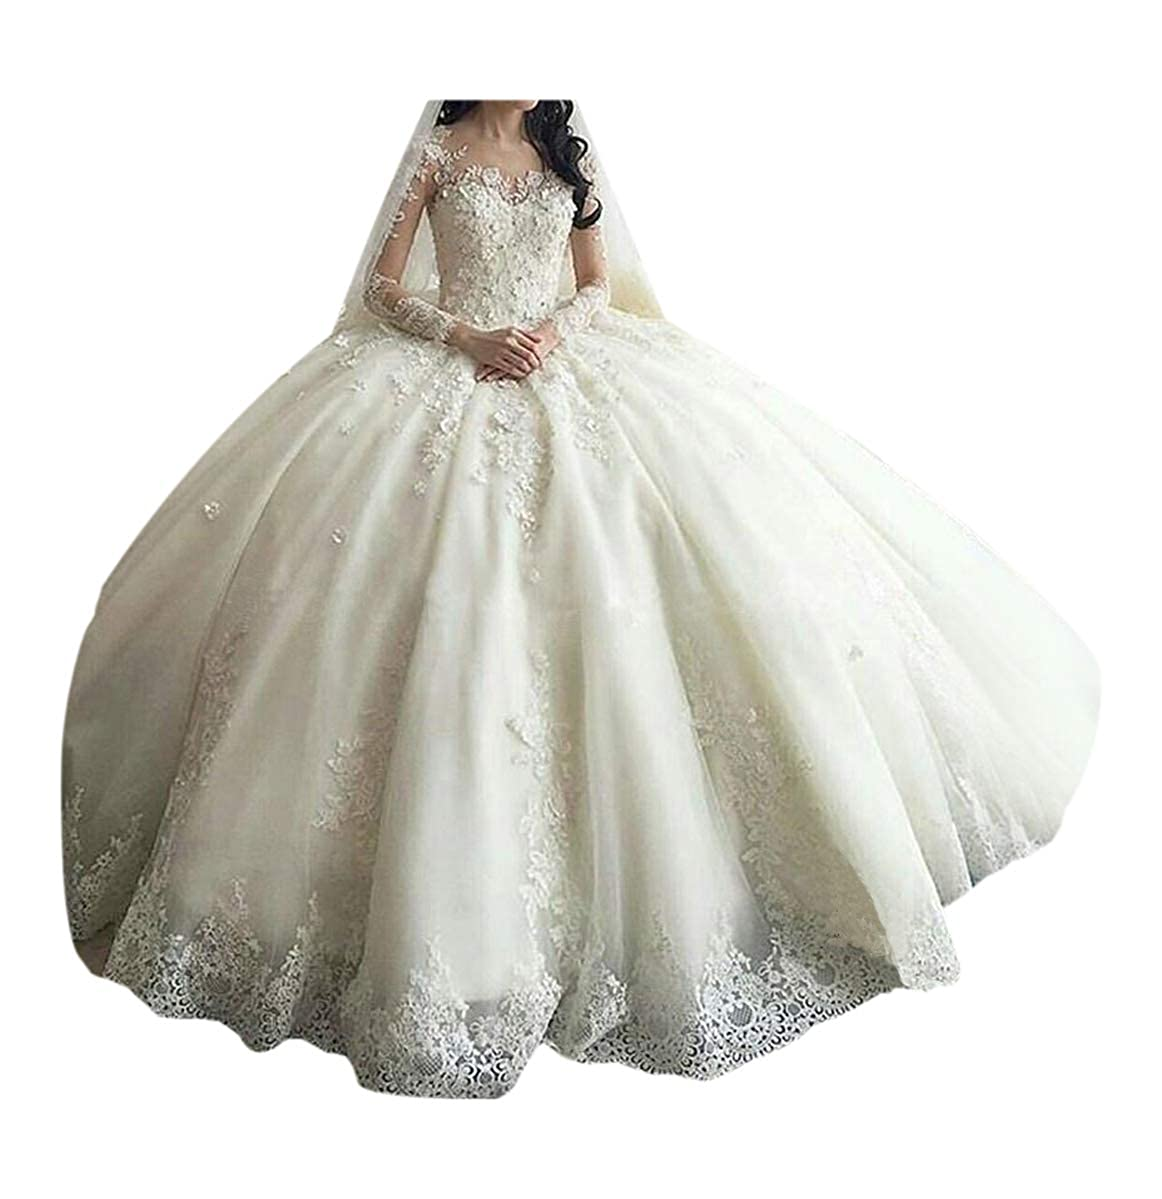 453b40b41480 TBGirl Women's Long Sleeve Lace Ball Gown Wedding Dresses Cathedral Train  at Amazon Women's Clothing store: